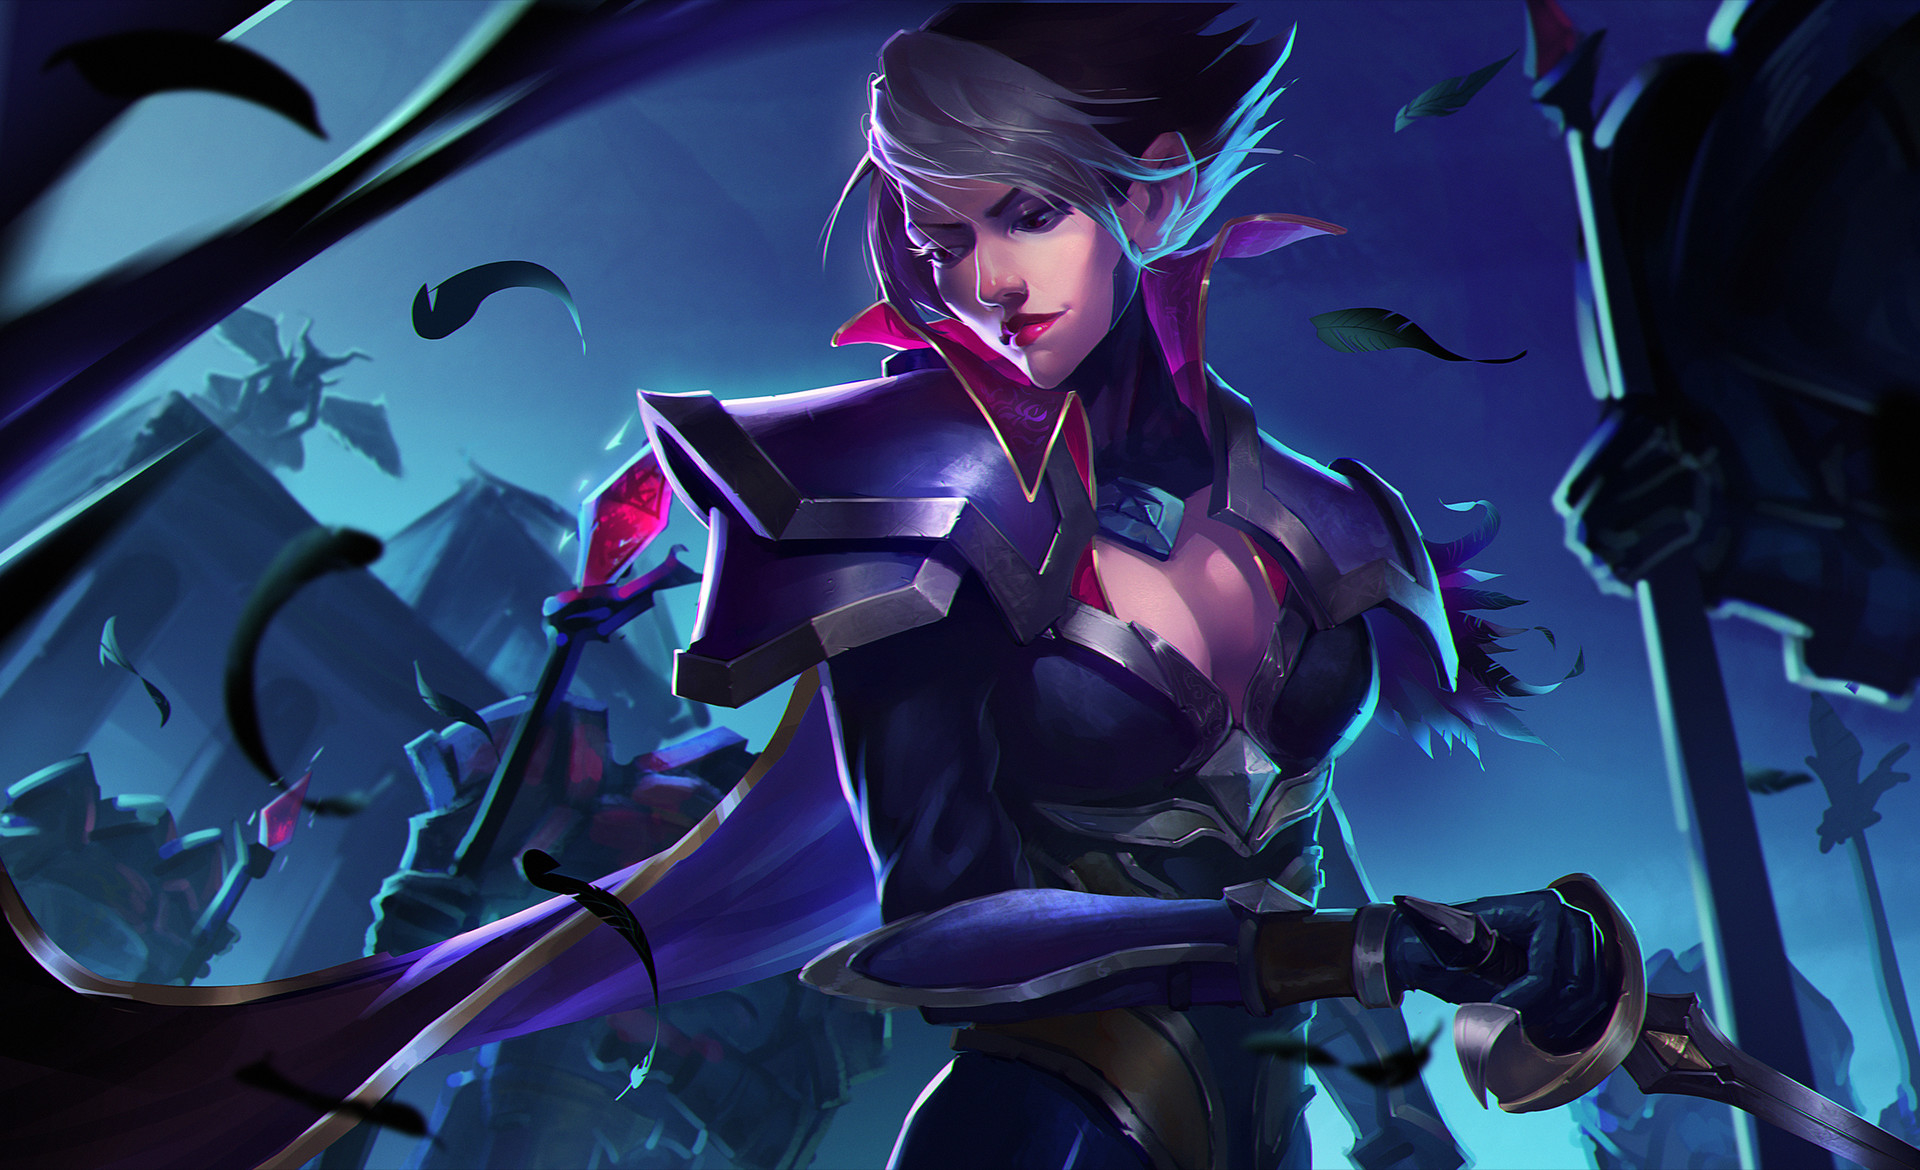 Fiora Lol Wallpaper Hd Games 4k Wallpapers Images Photos And